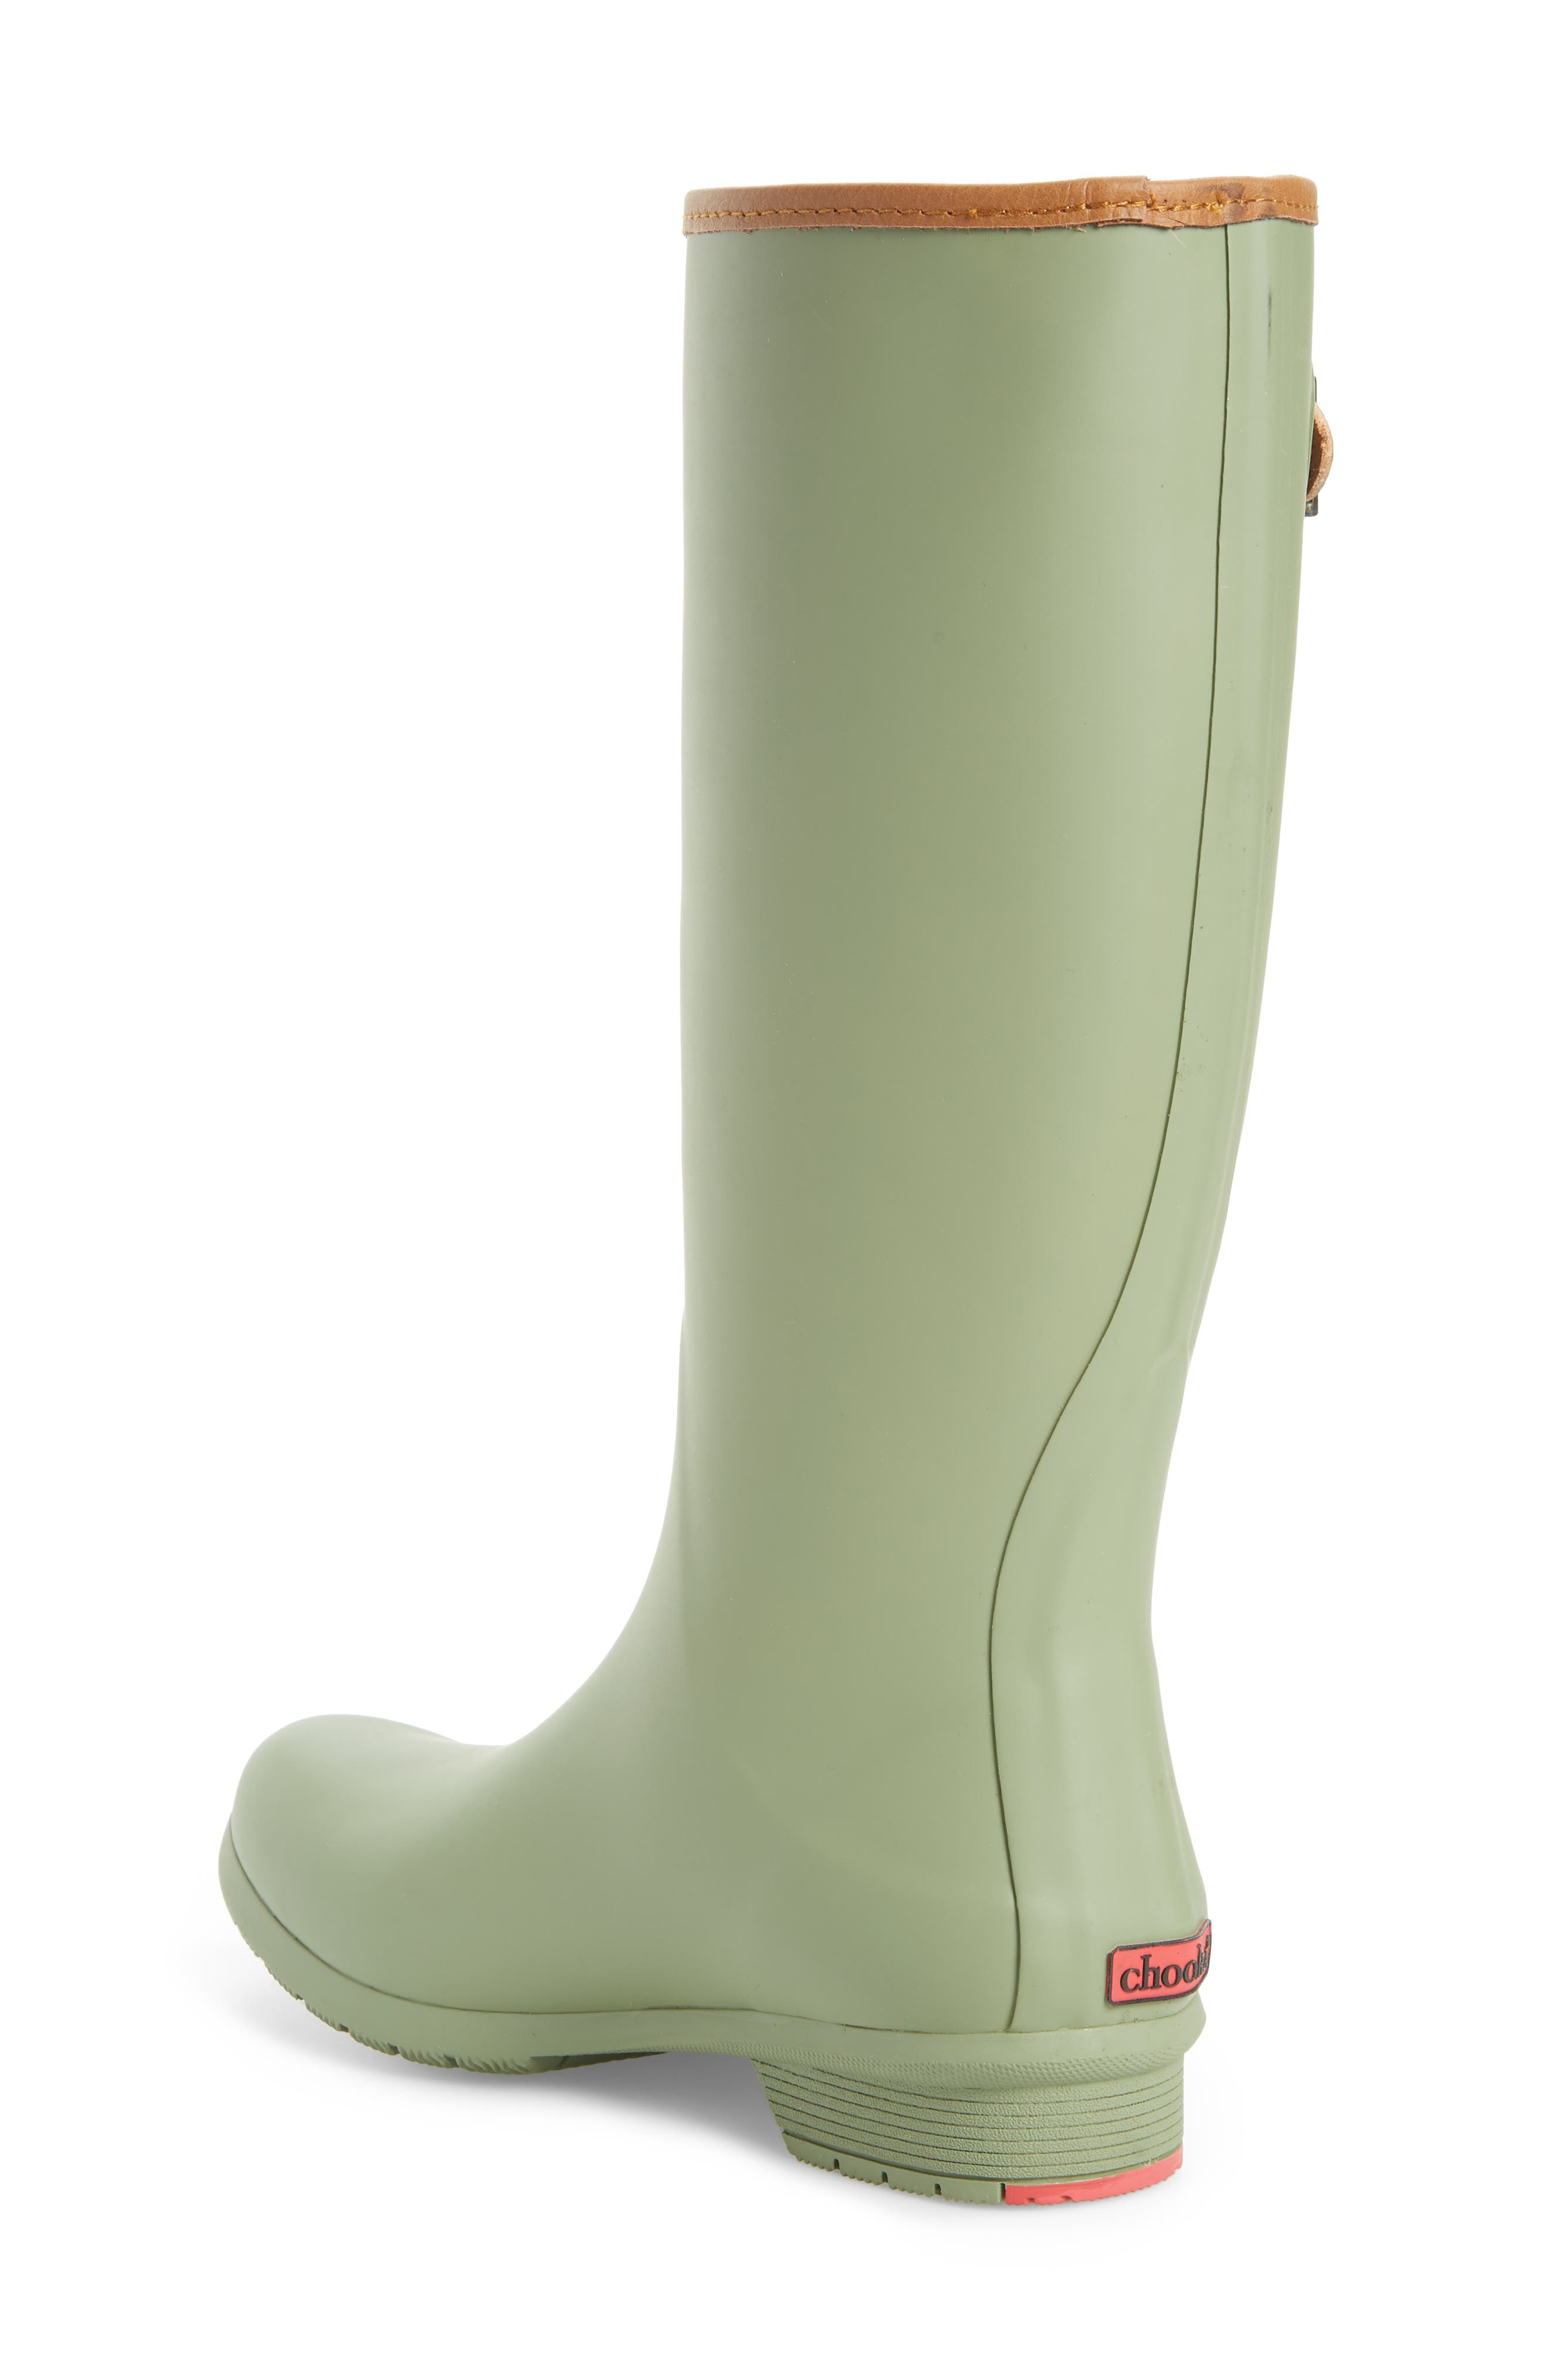 City Tall Rain Boot,                             Alternate thumbnail 2, color,                             303